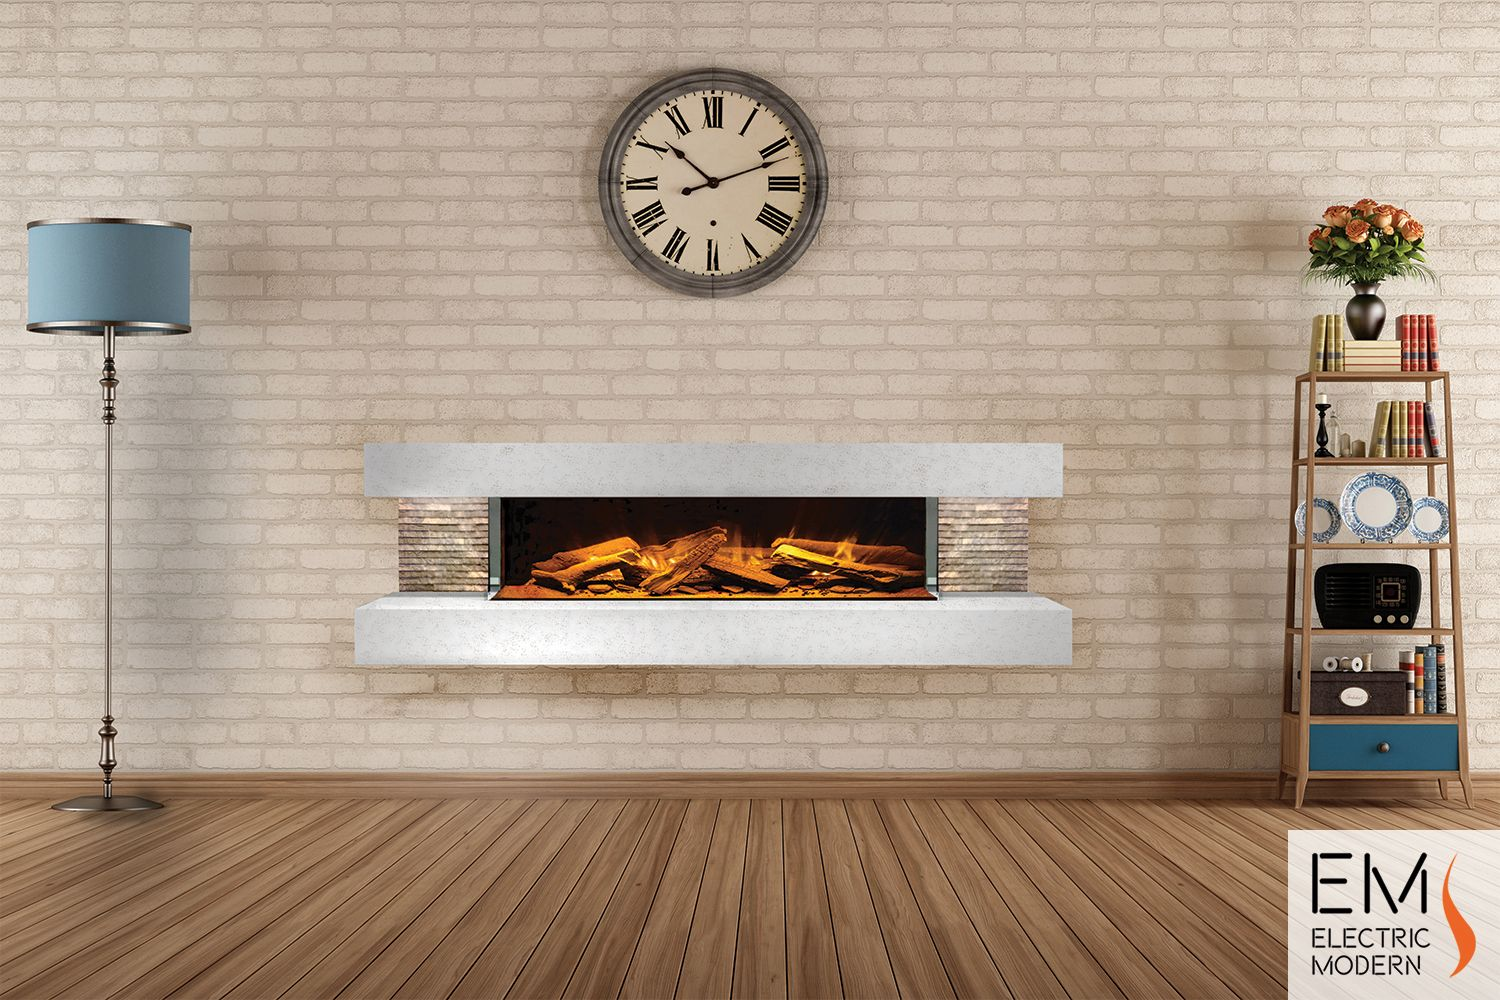 The compton is an electric linear fireplace kit that comes with